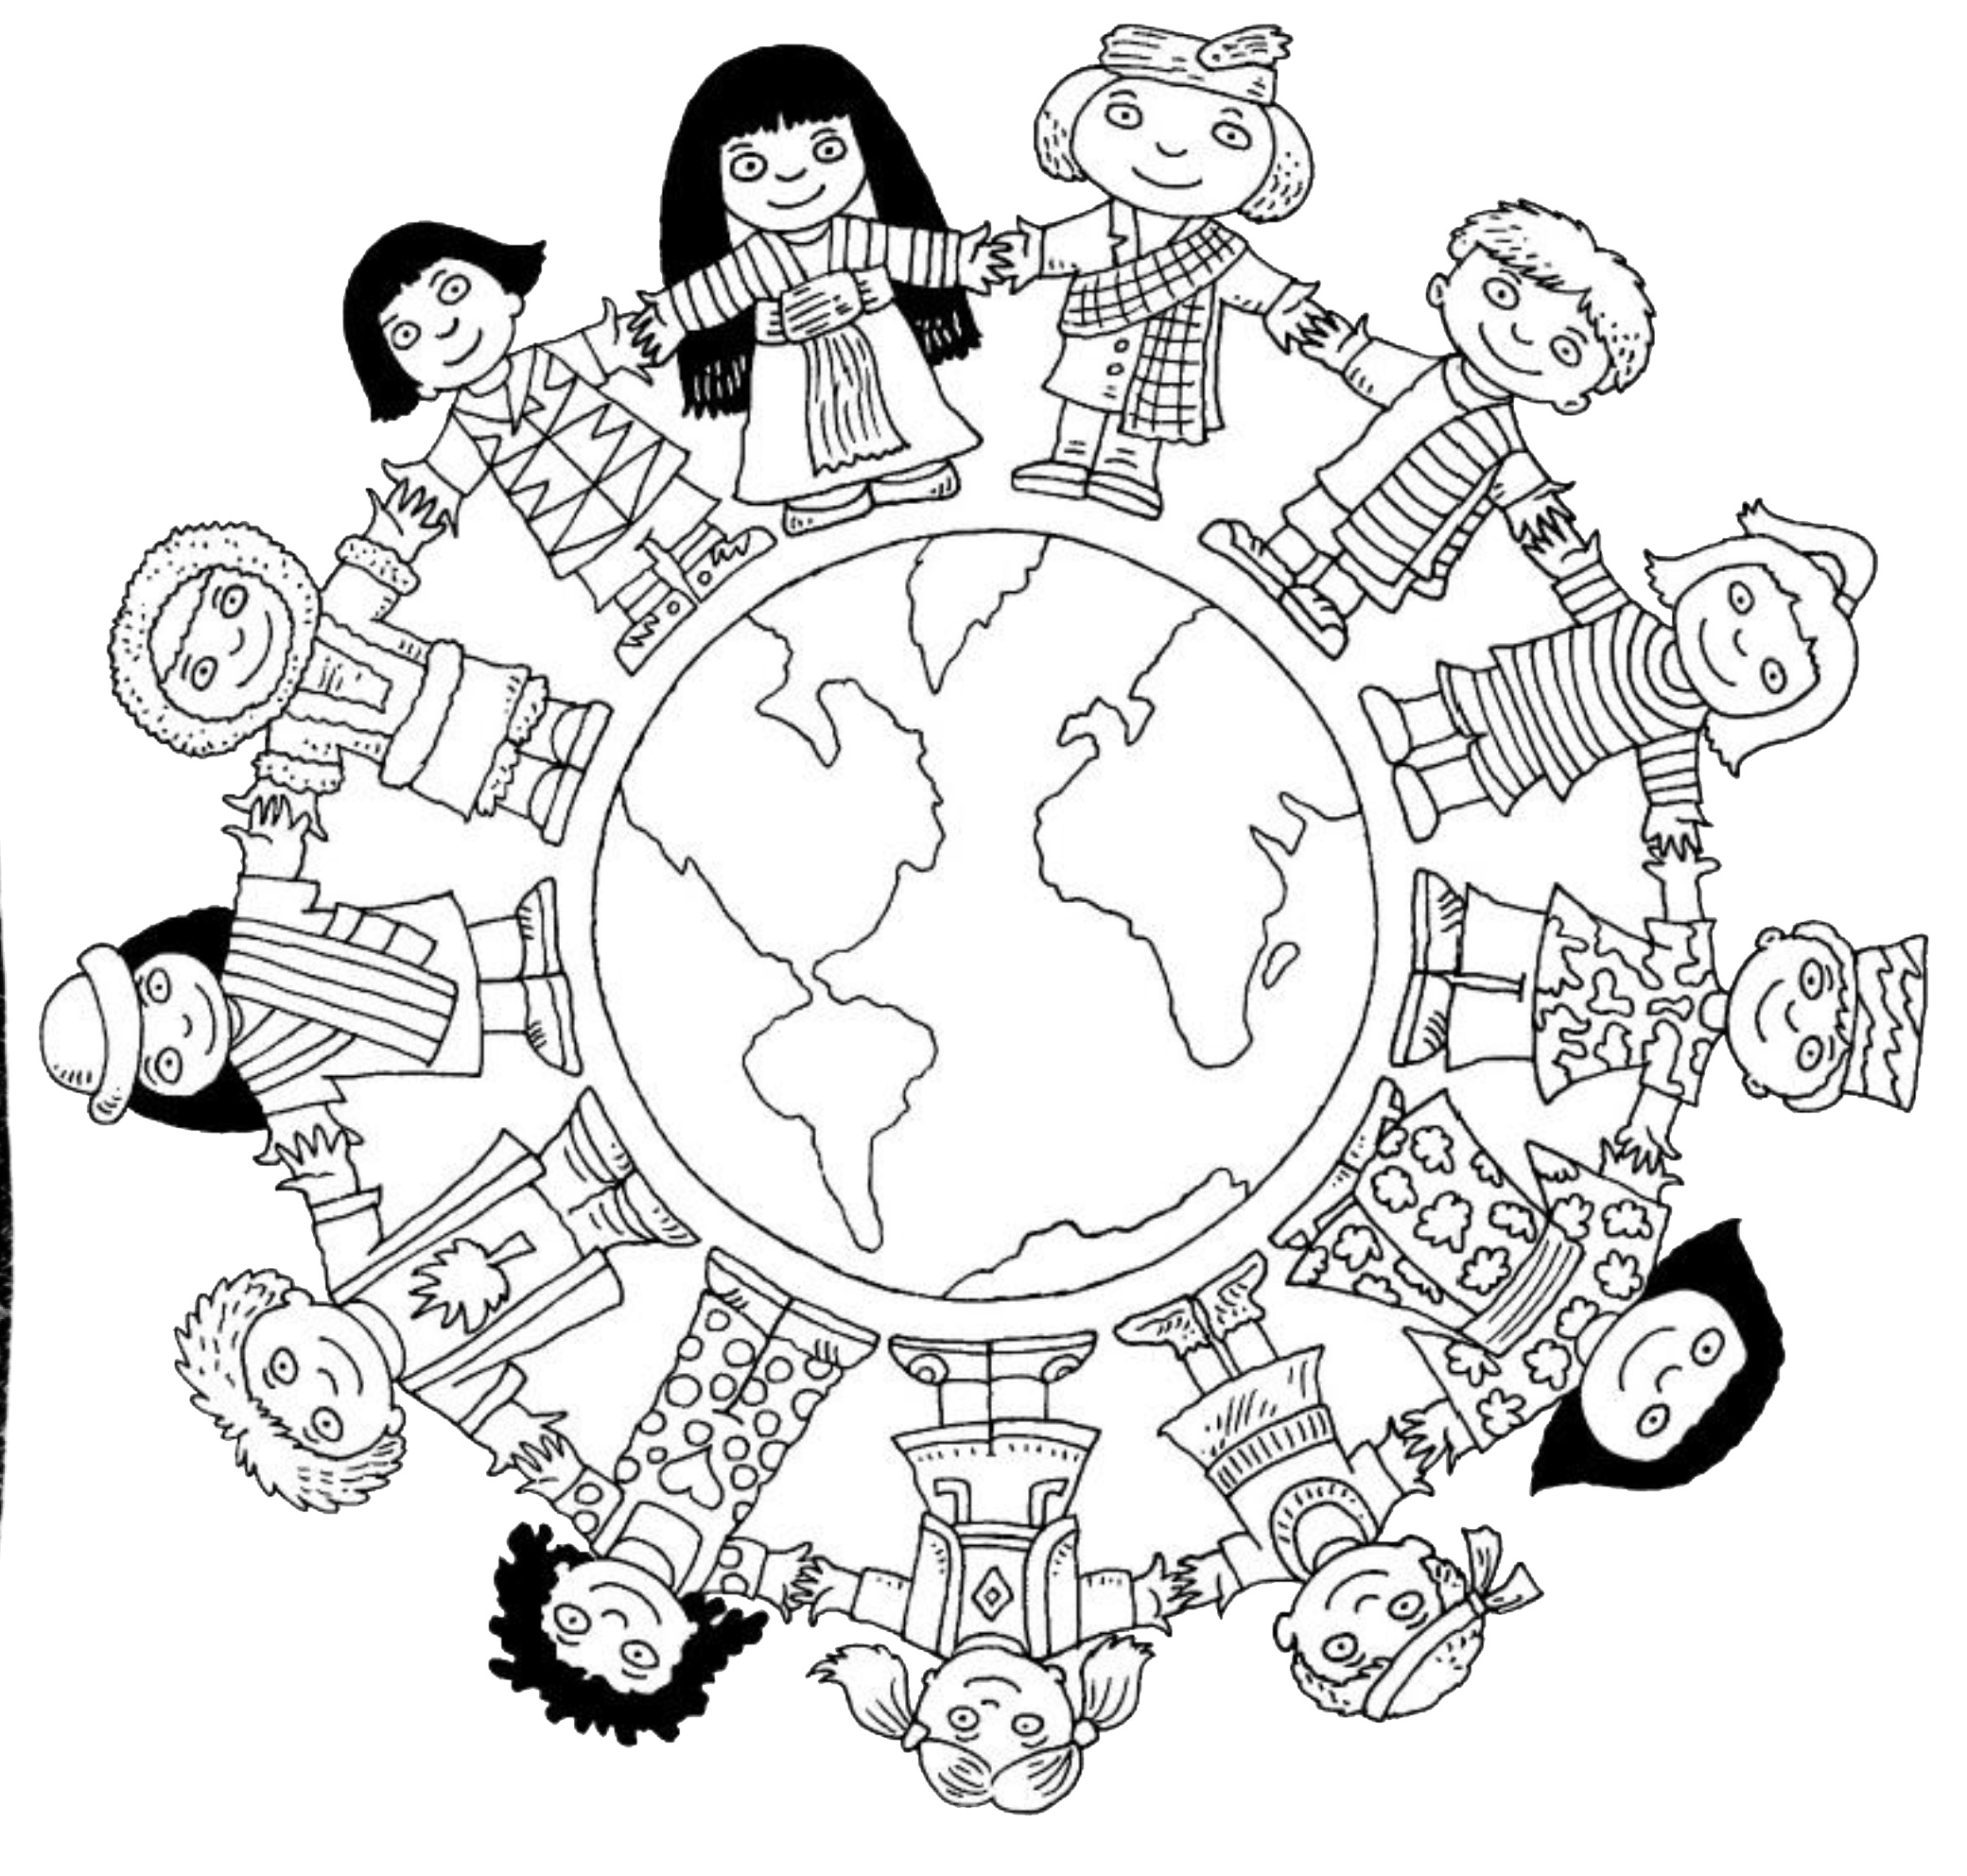 world coloring pages children around the world coloring pages to download and pages world coloring